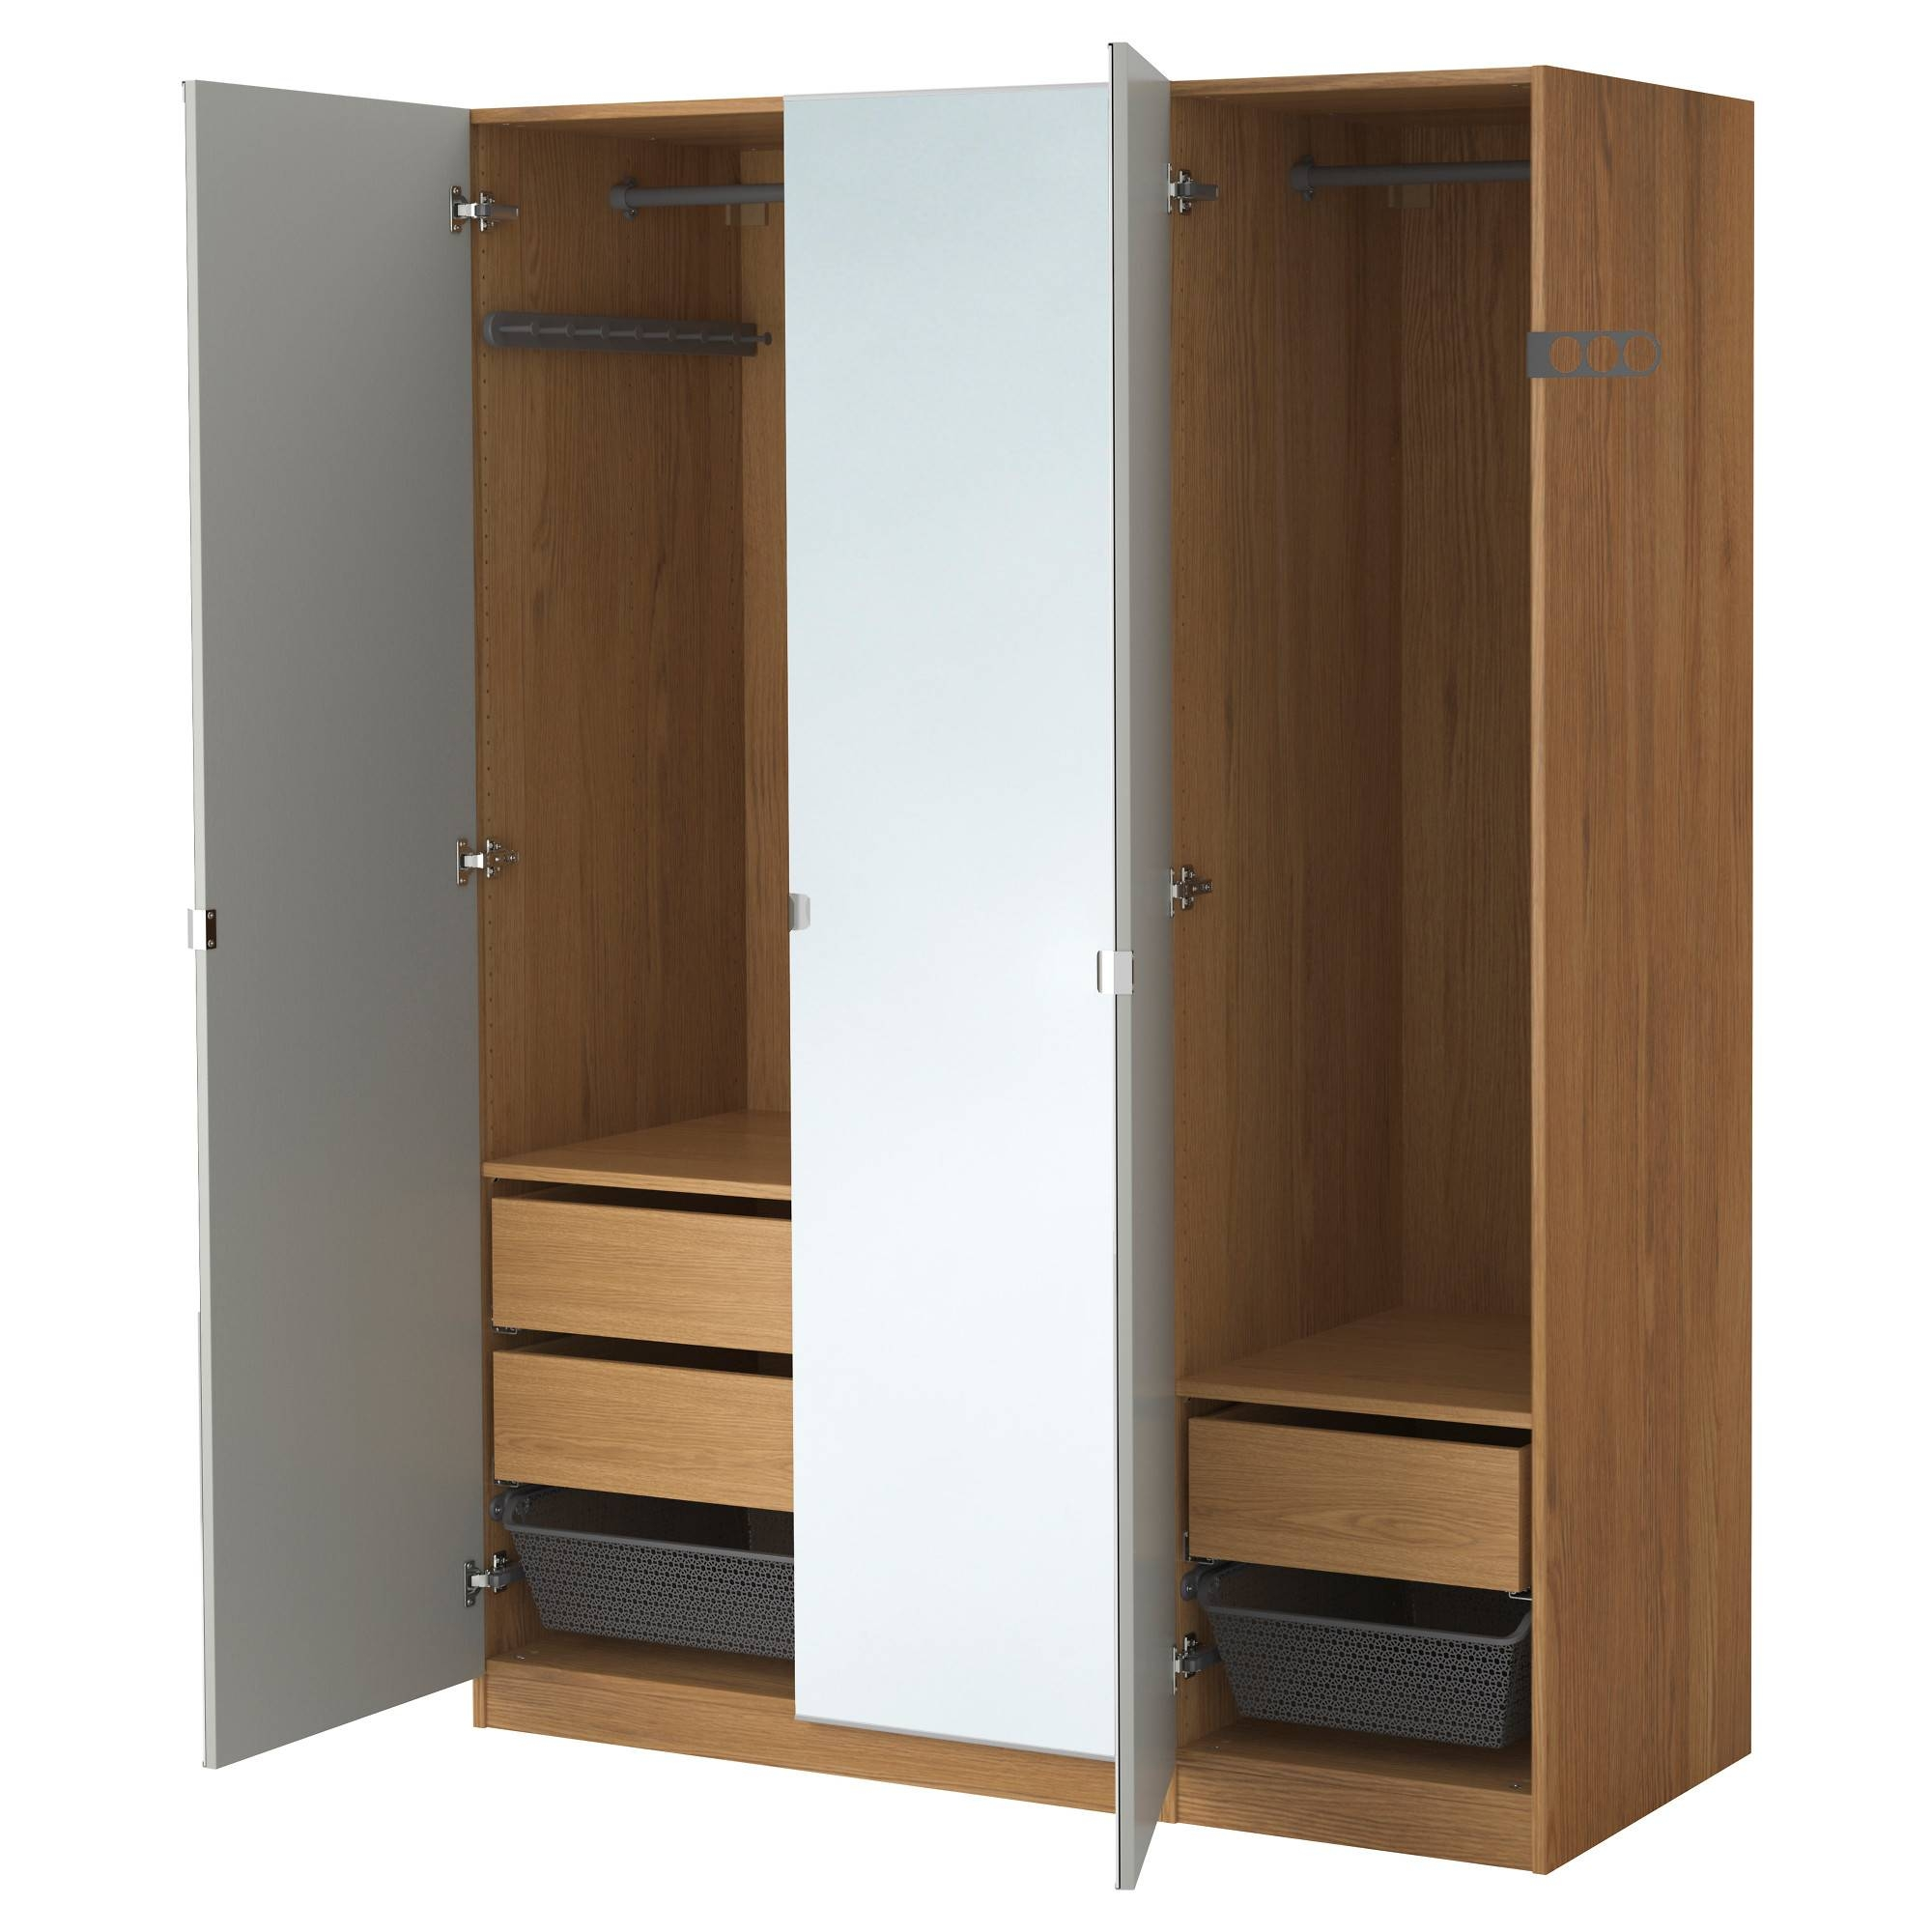 Wardrobes | Ikea regarding One Door Wardrobes With Mirror (Image 12 of 15)